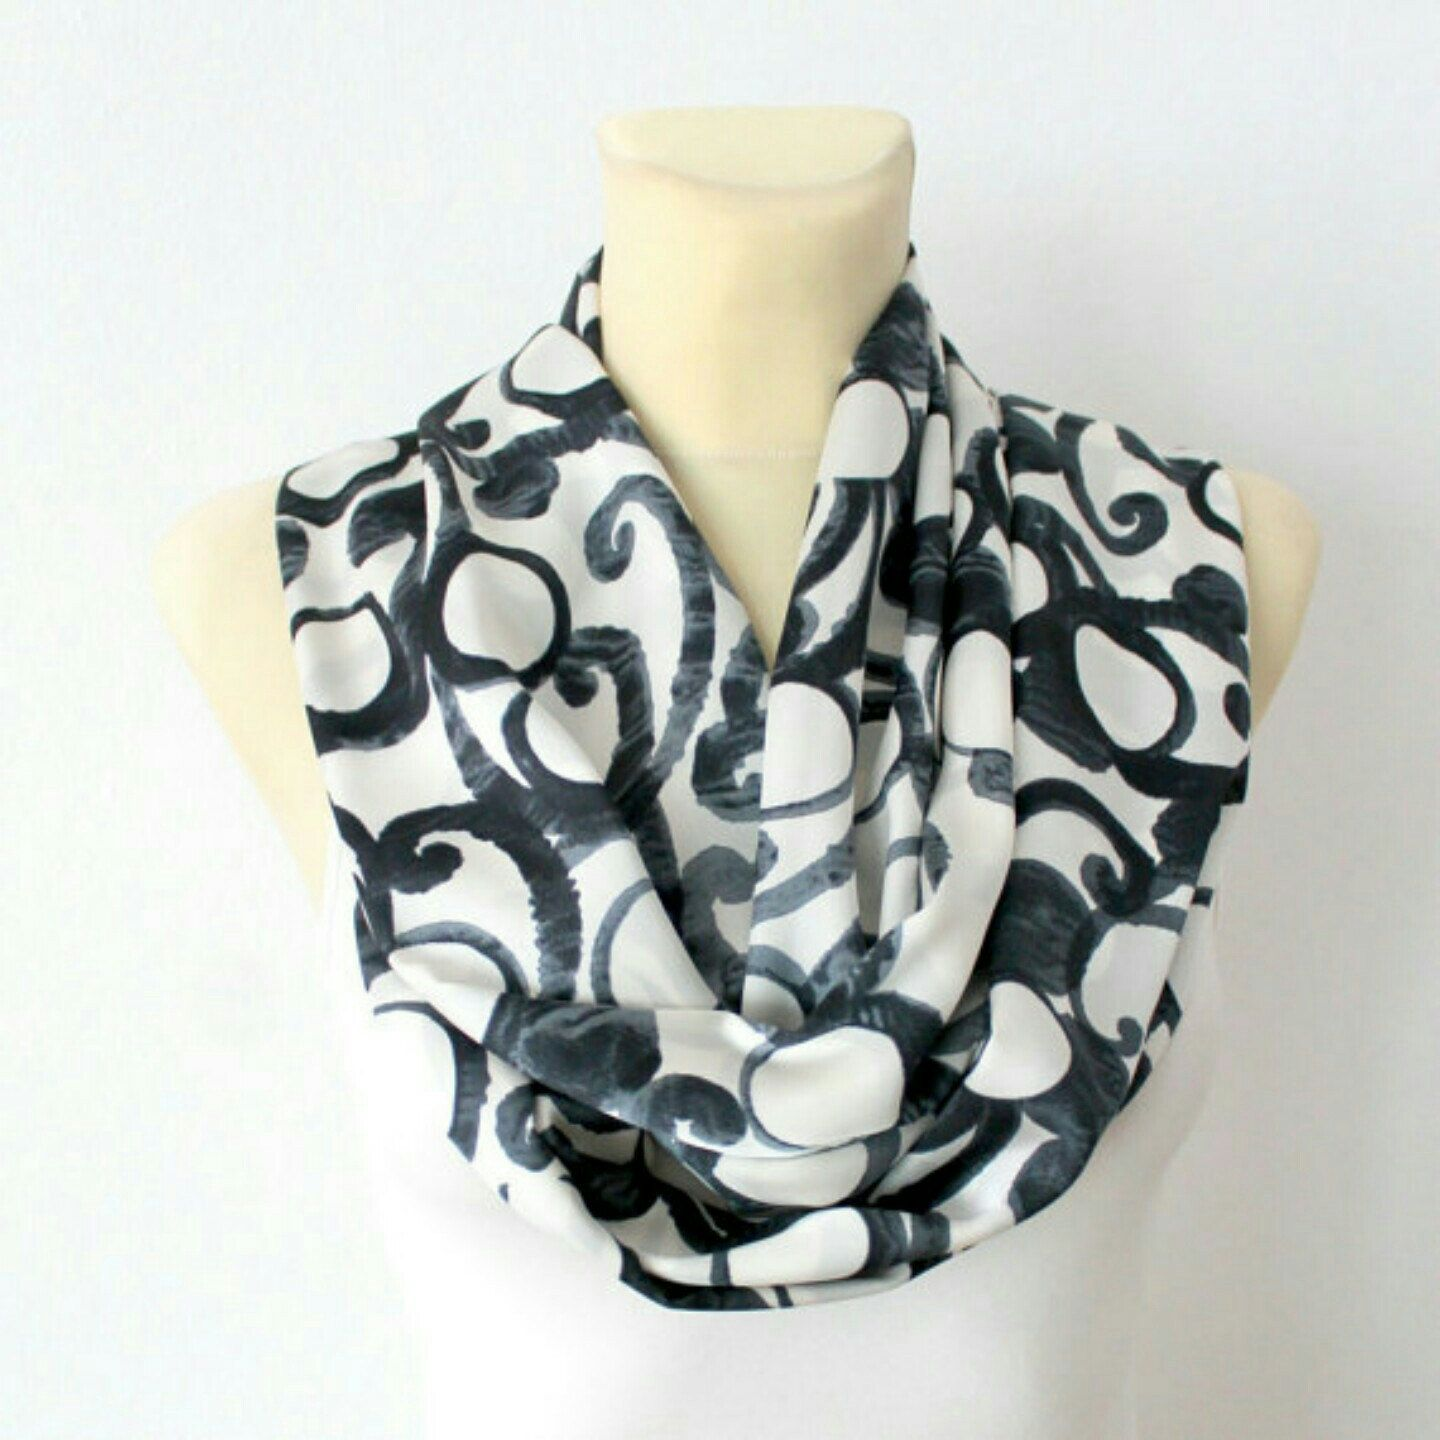 Summer Sale 20%OFF on all our handmade scarves! Find unique designes and get them before they are all sold out. Use coupon code SUMMER20 at the checkout. You can chose from all sections of the shop (silk scarves, satin scarves, knit scarves and more)